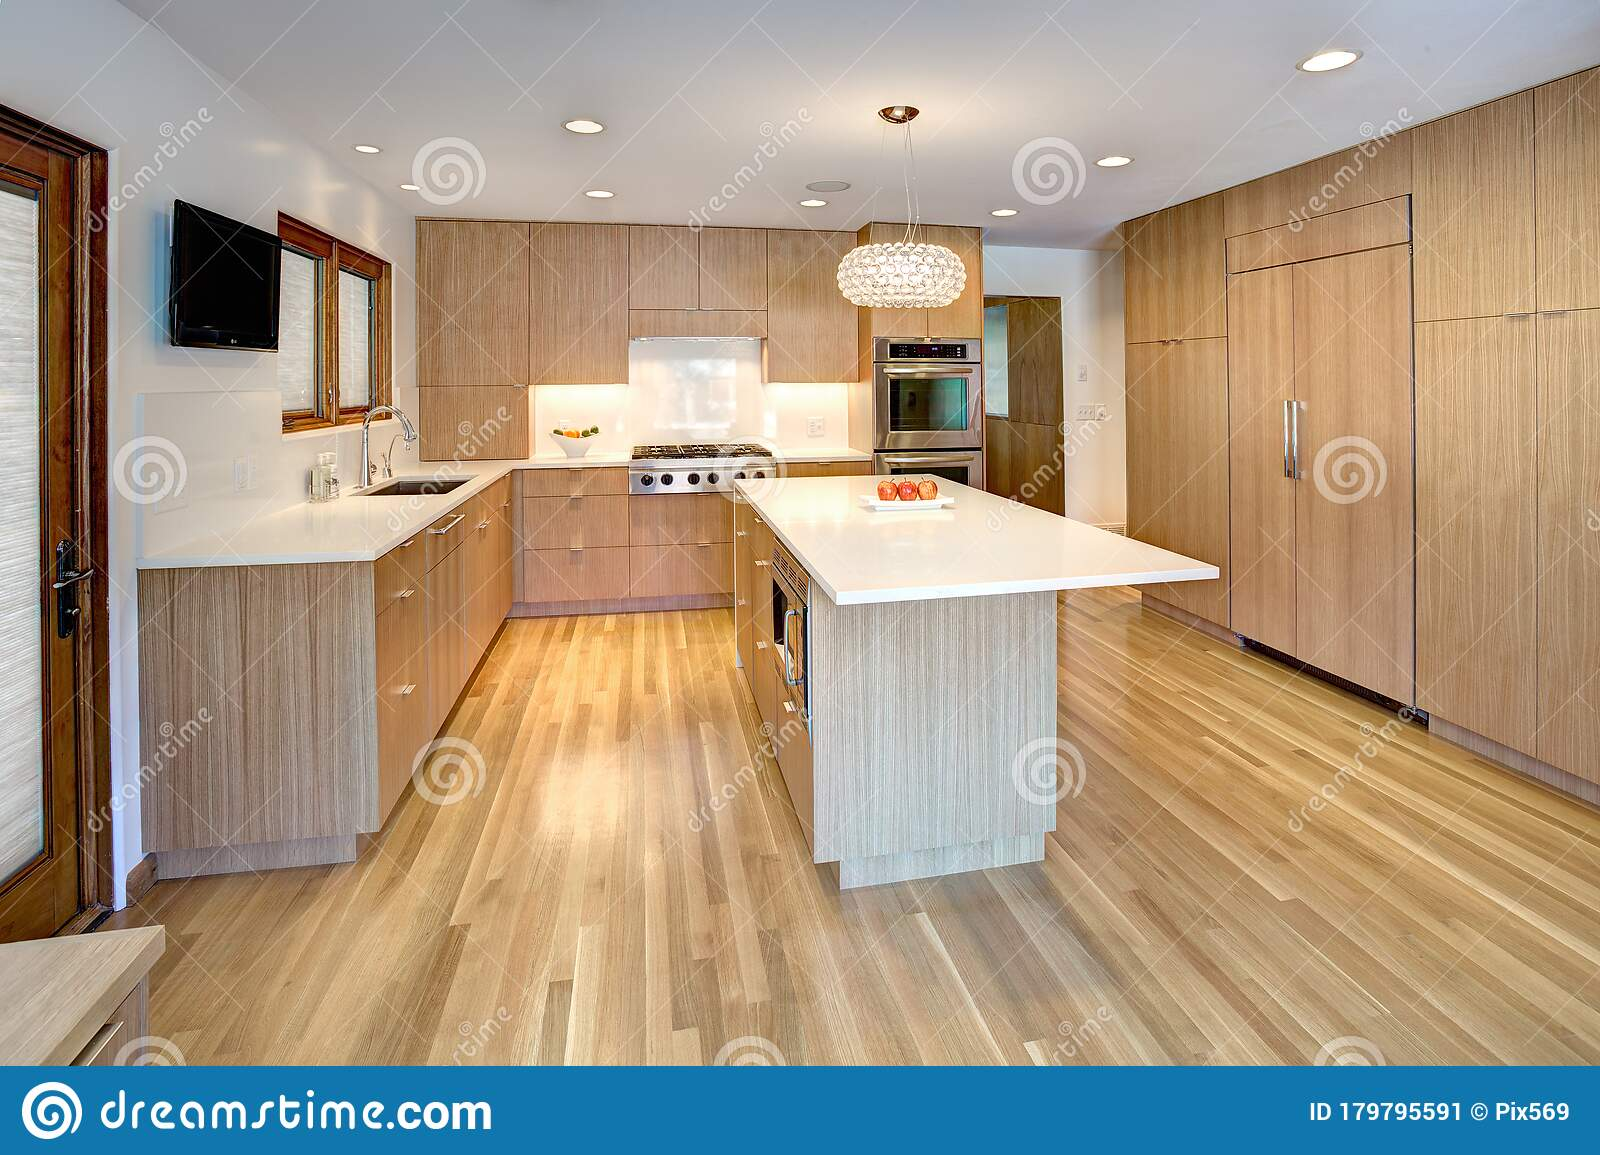 Quarter Saw White Oak Residential Kitchen Cabinets Stock Image Image Of Construction Builtins 179795591